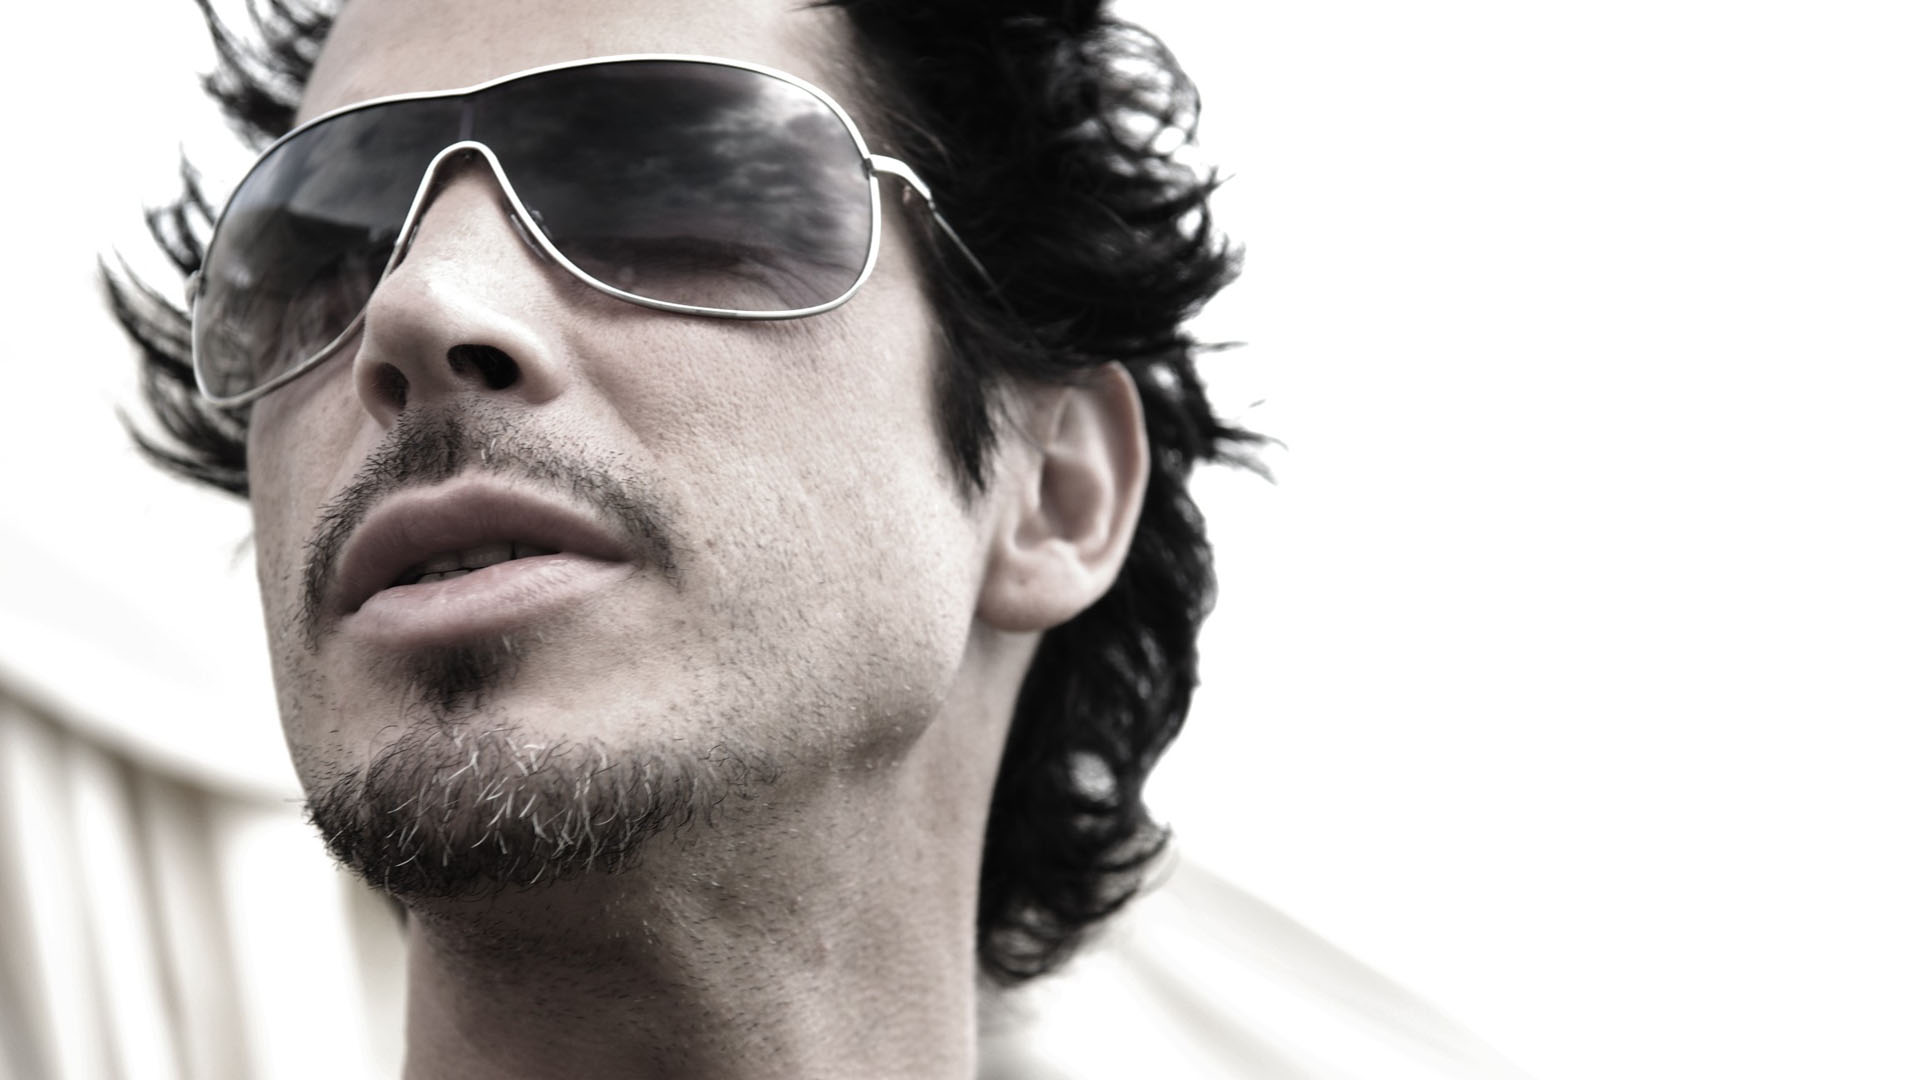 Chris Cornell With Glasses